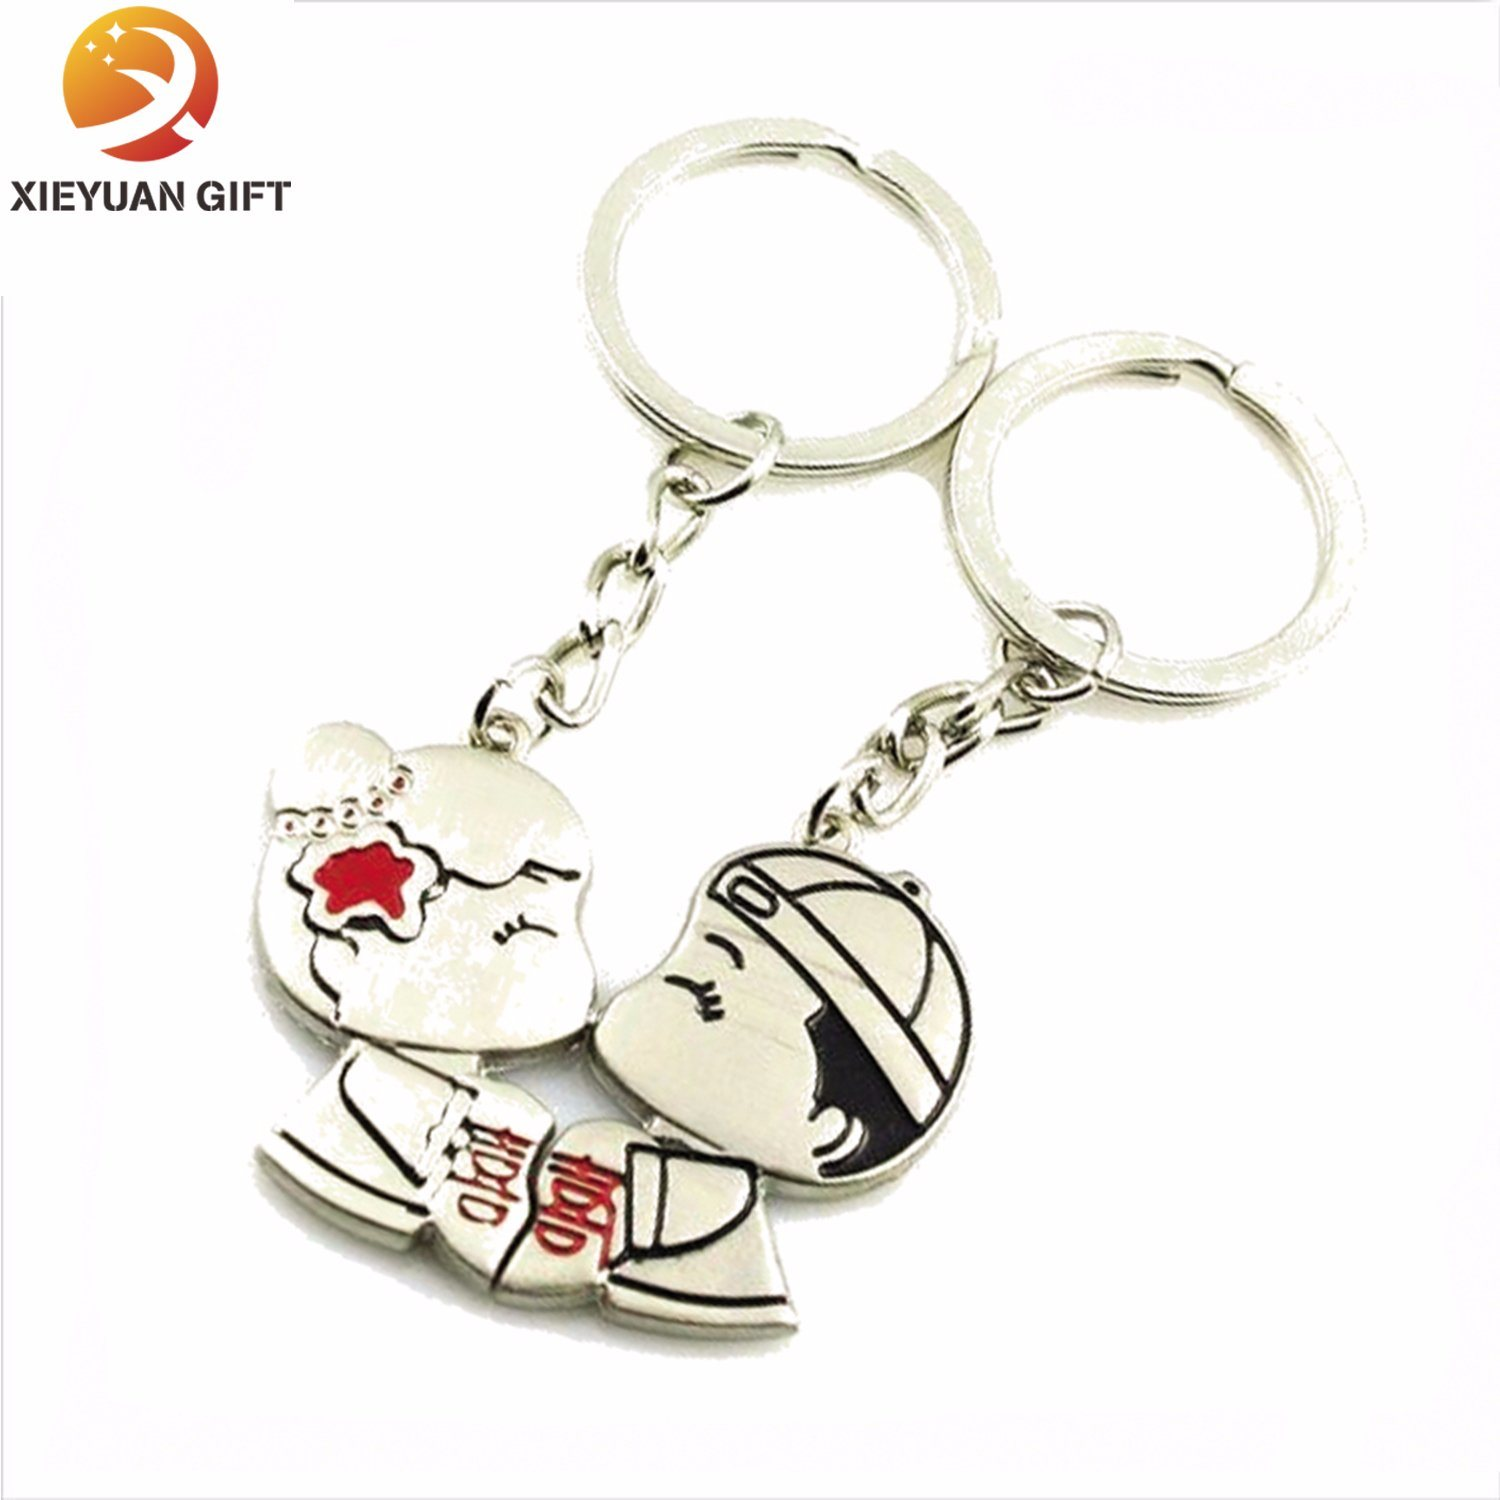 Zinc Alloy Gold Plated Brass Key Ring for Gifts (XY-mxl91006)